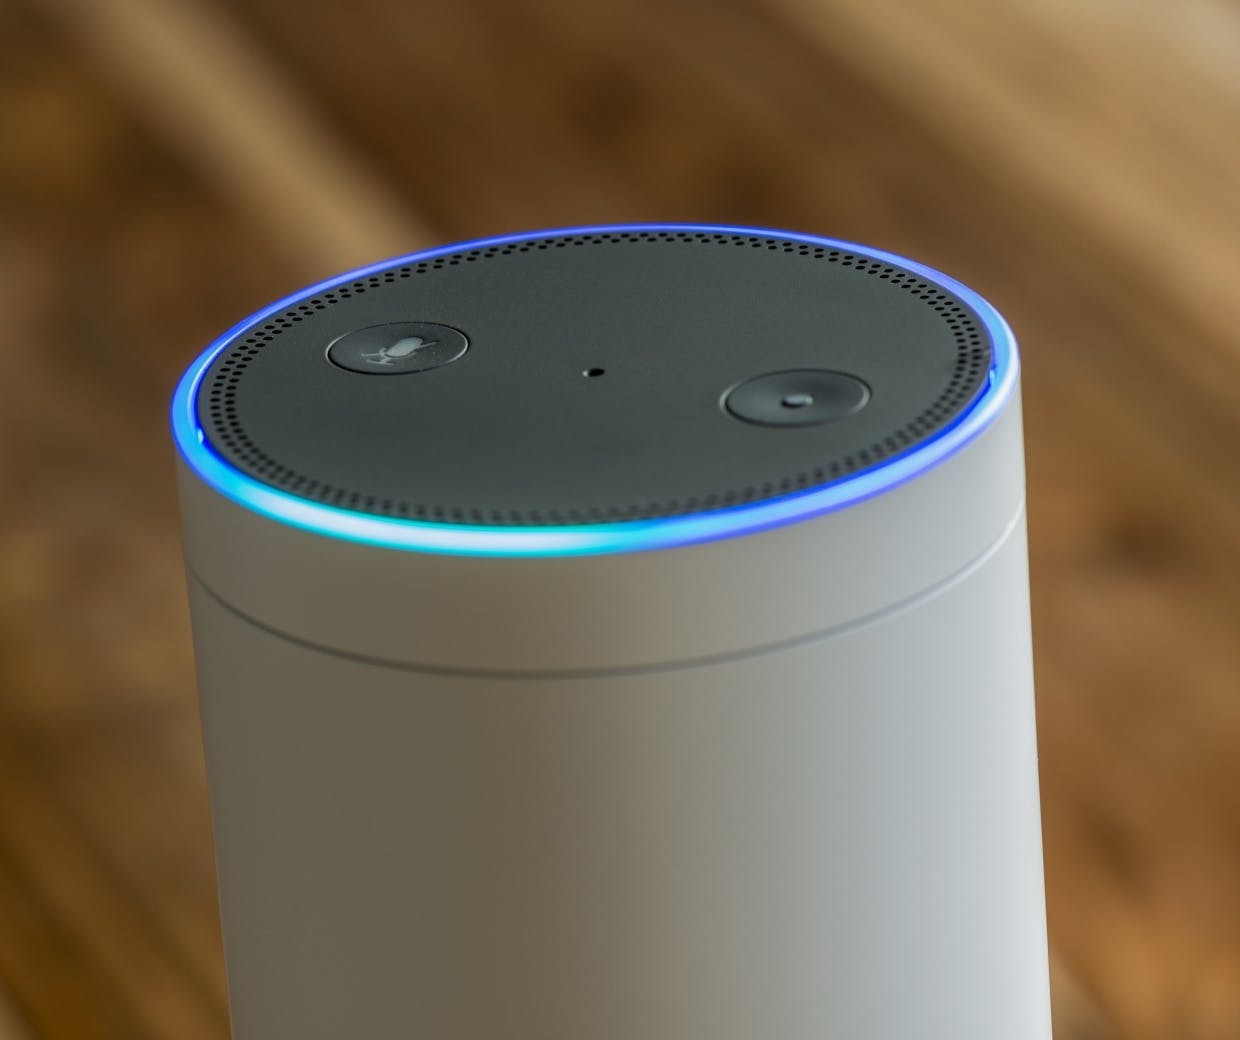 Amazon Echo voice assistant